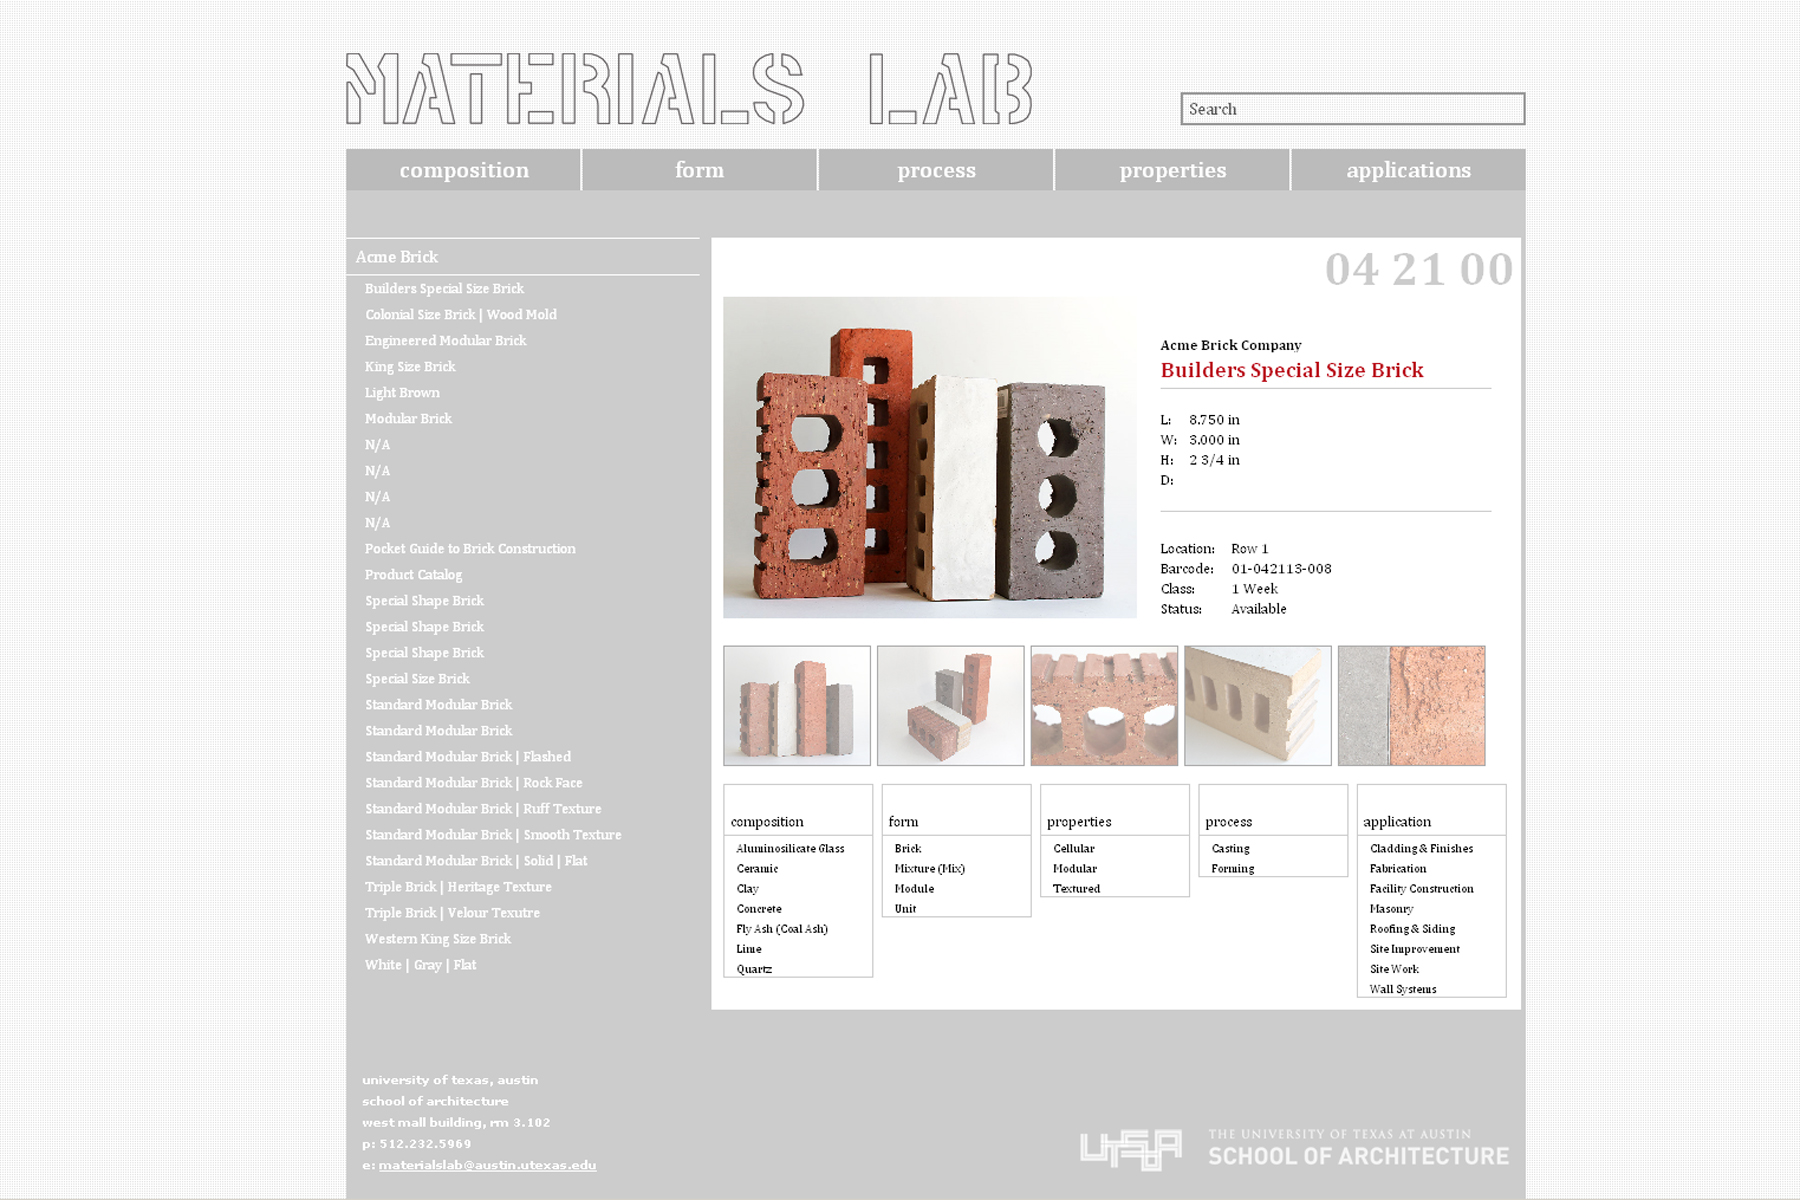 All material samples are represented on our online database